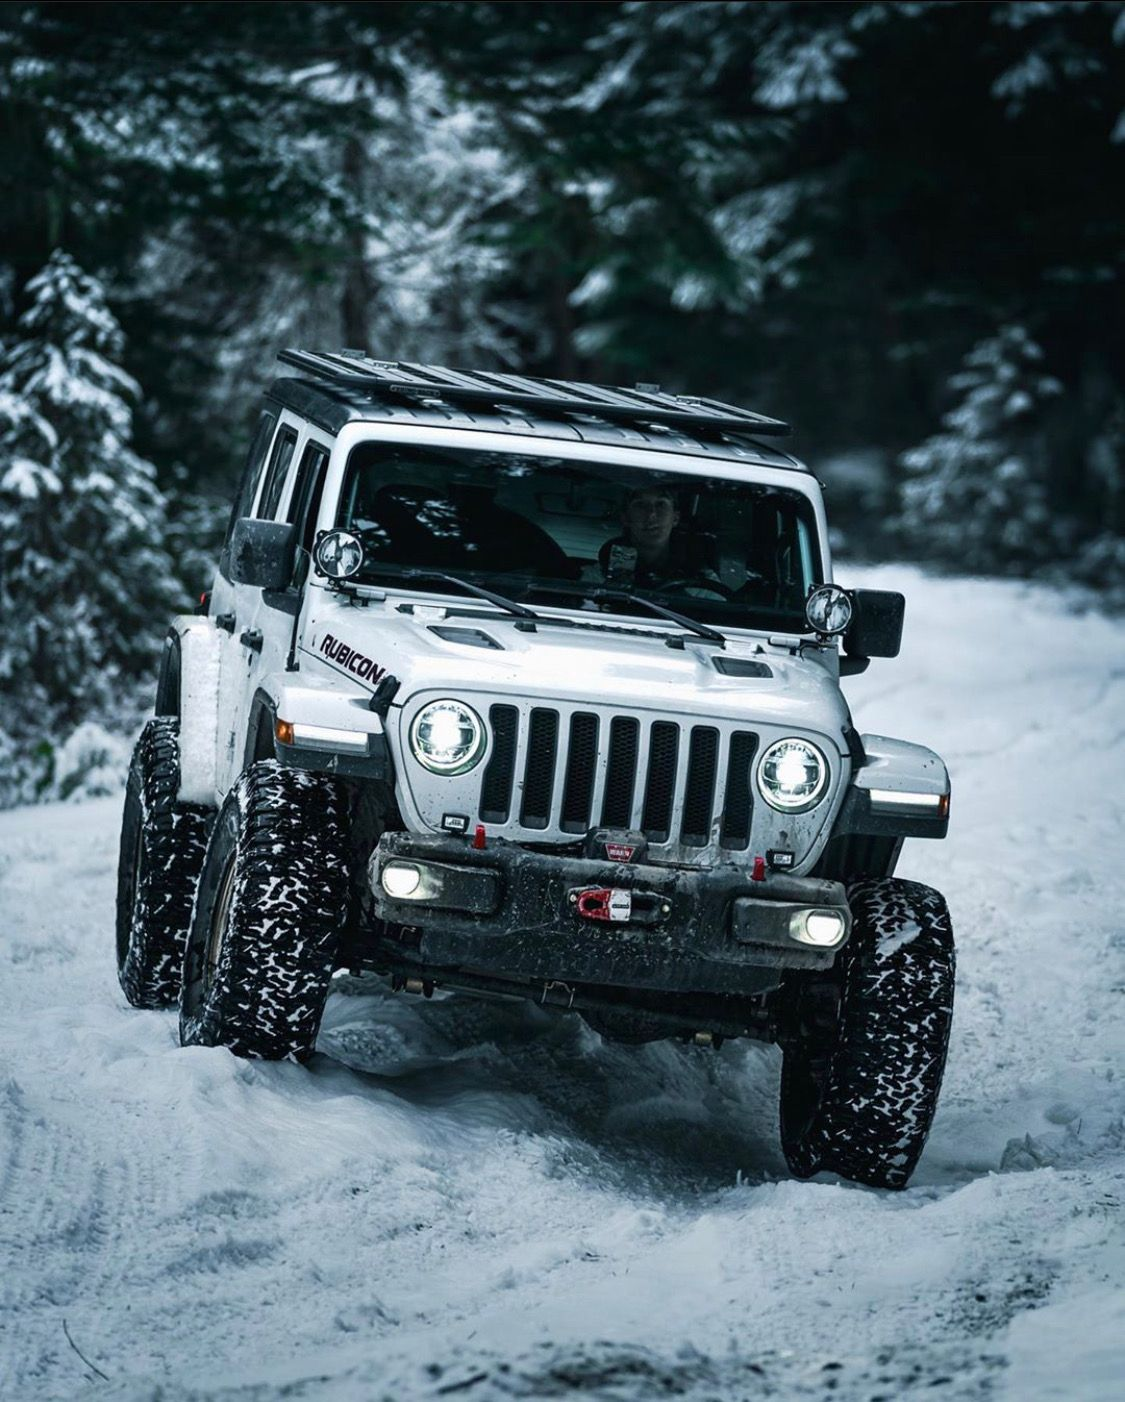 Off The Grid Hotkarlsadventures Lifted Jeep Wrangler Rubicon Jl Jeep Wrangler Jeepwrangler Rubicon In 2020 Jeep Wrangler Rubicon Wrangler Rubicon